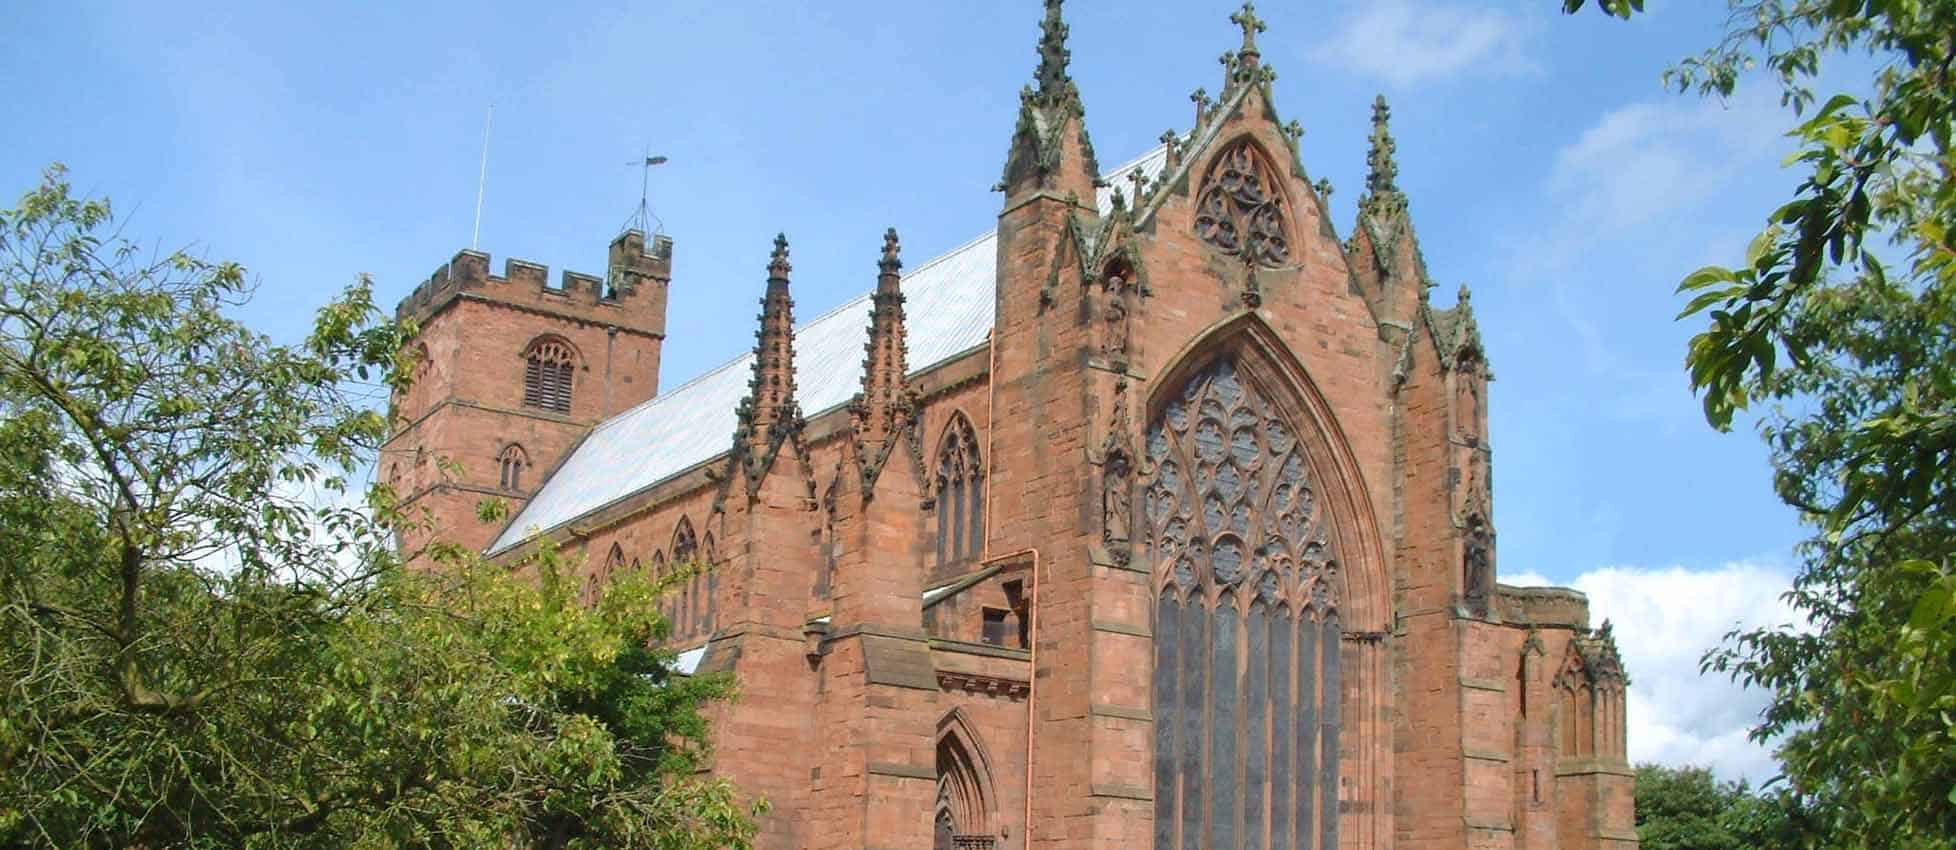 Cathedral_Carlisle1